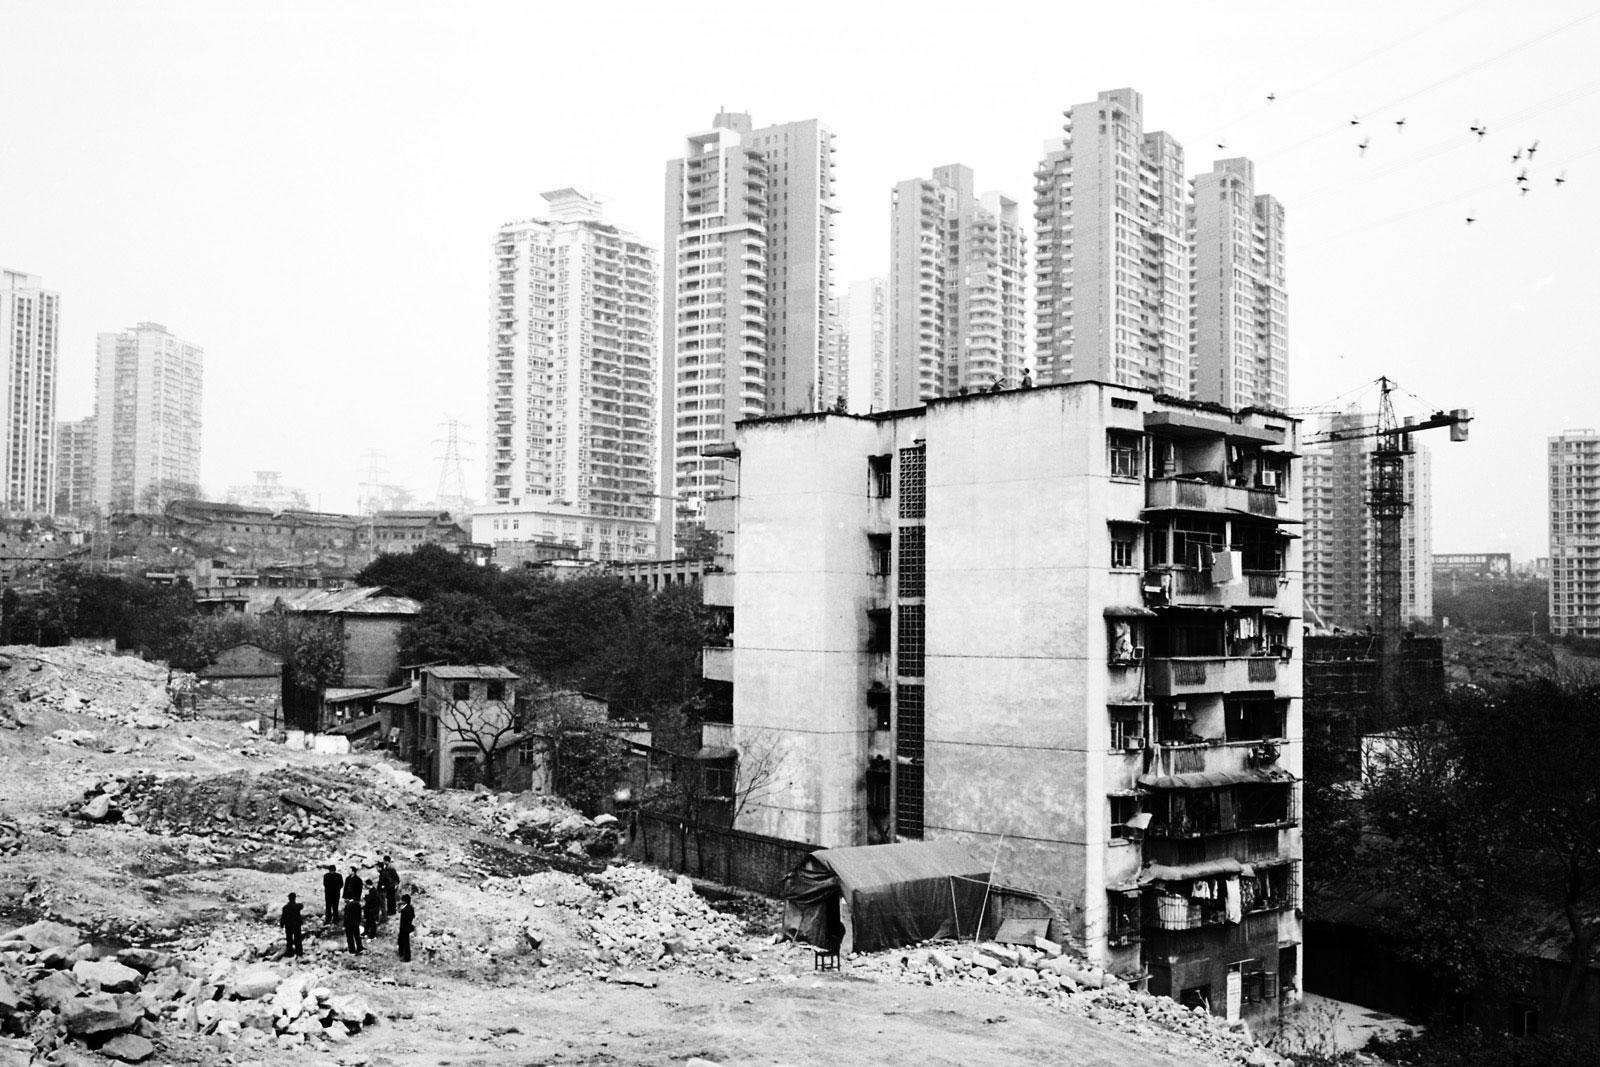 Landscape black & white urban china